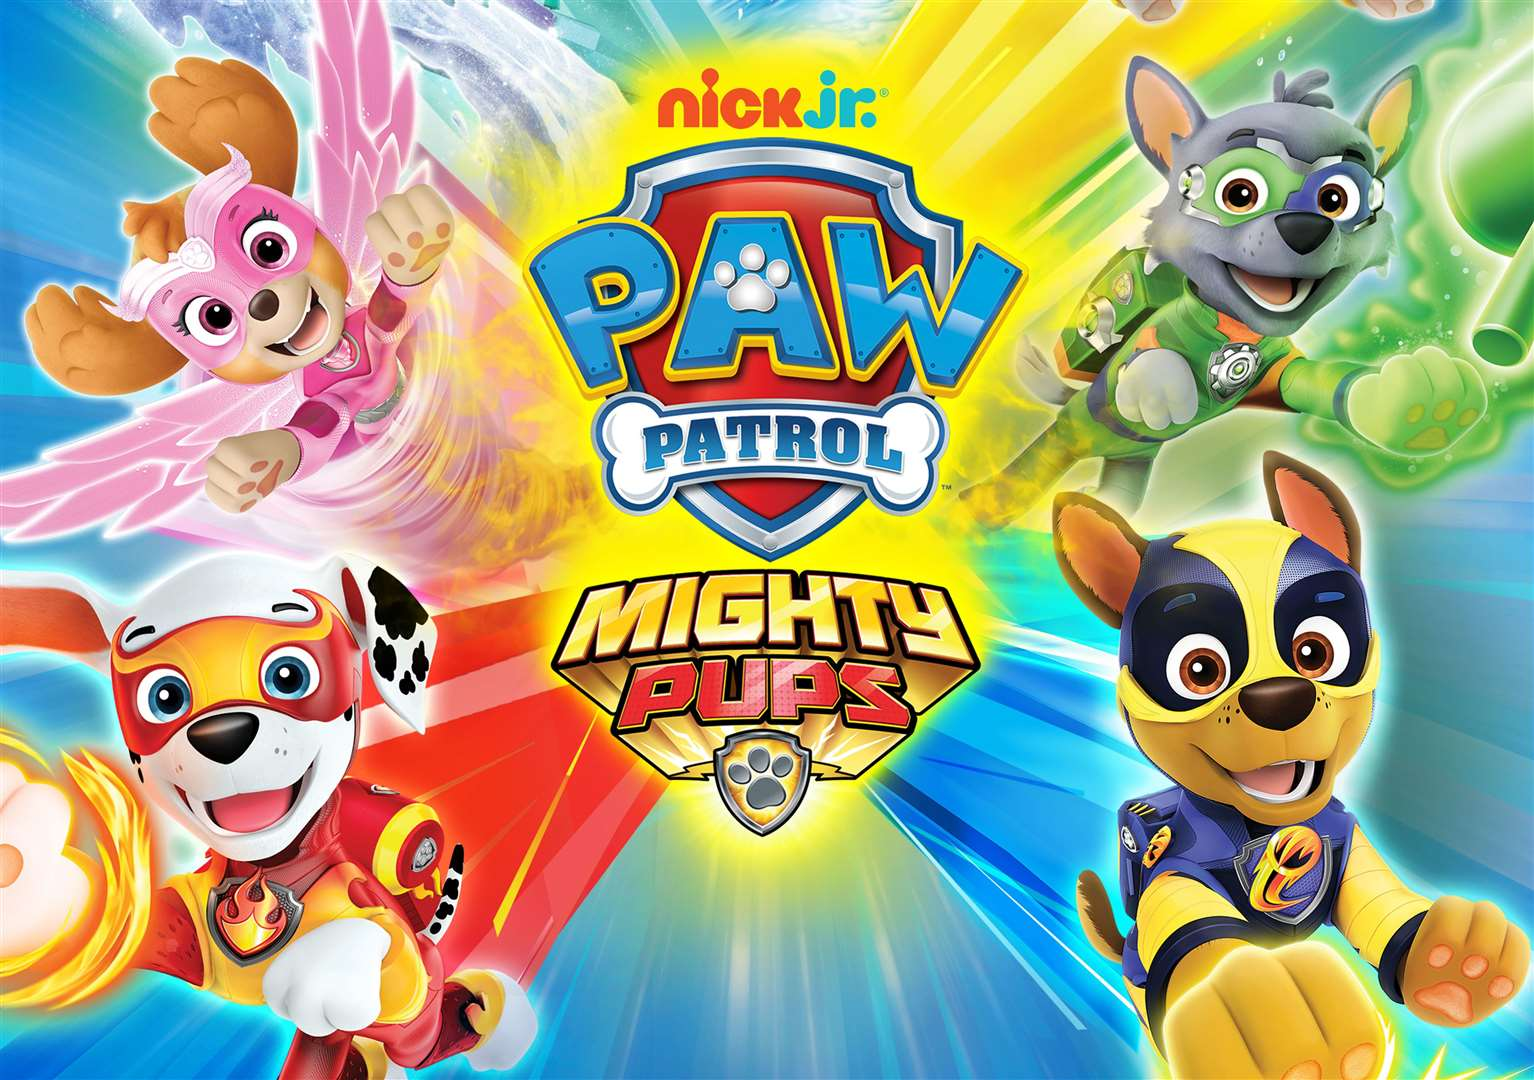 PAW Patrol: Mighty Pups is being released on May 17